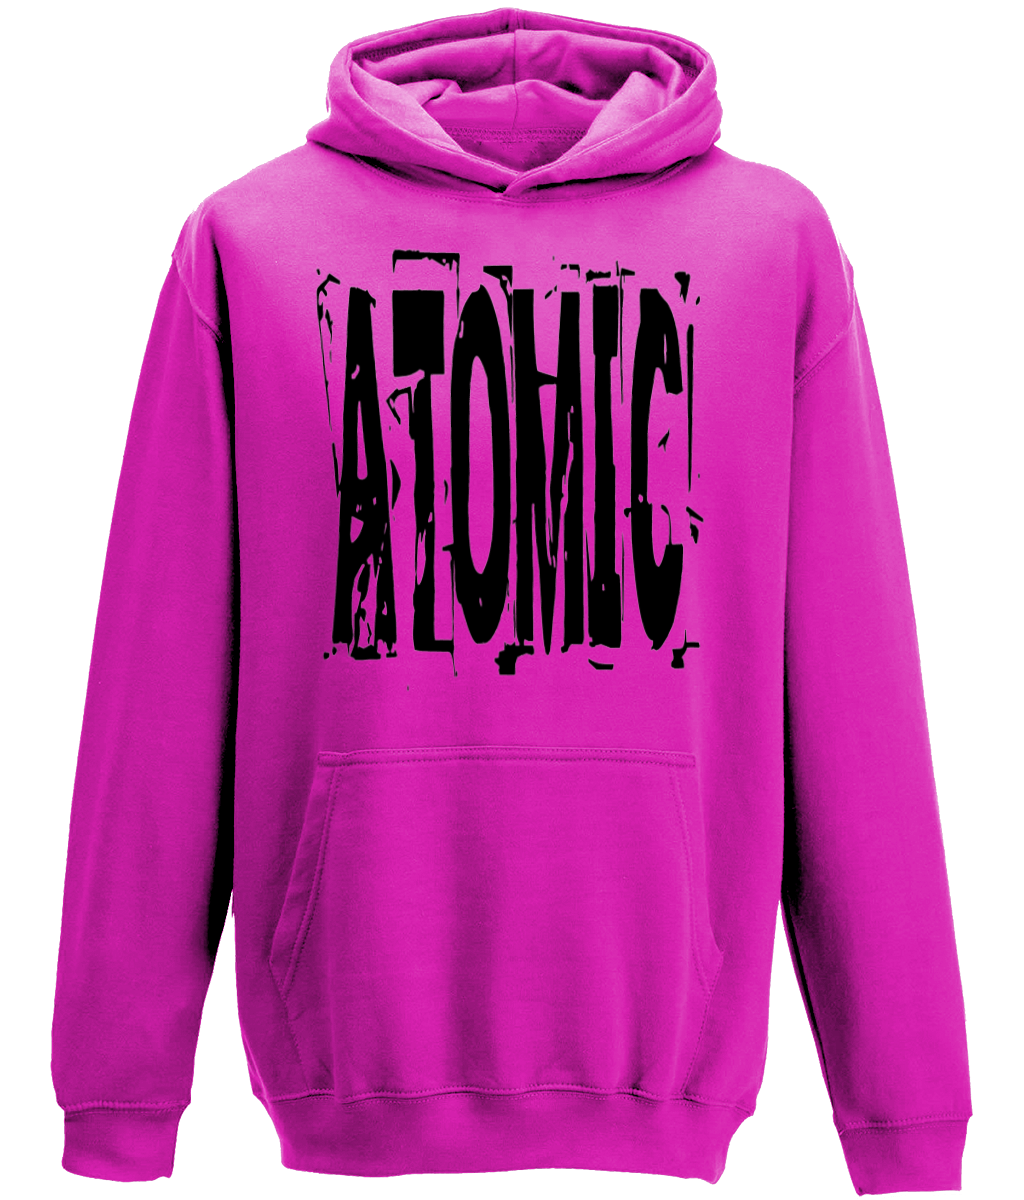 Atomic - youth's hoodie